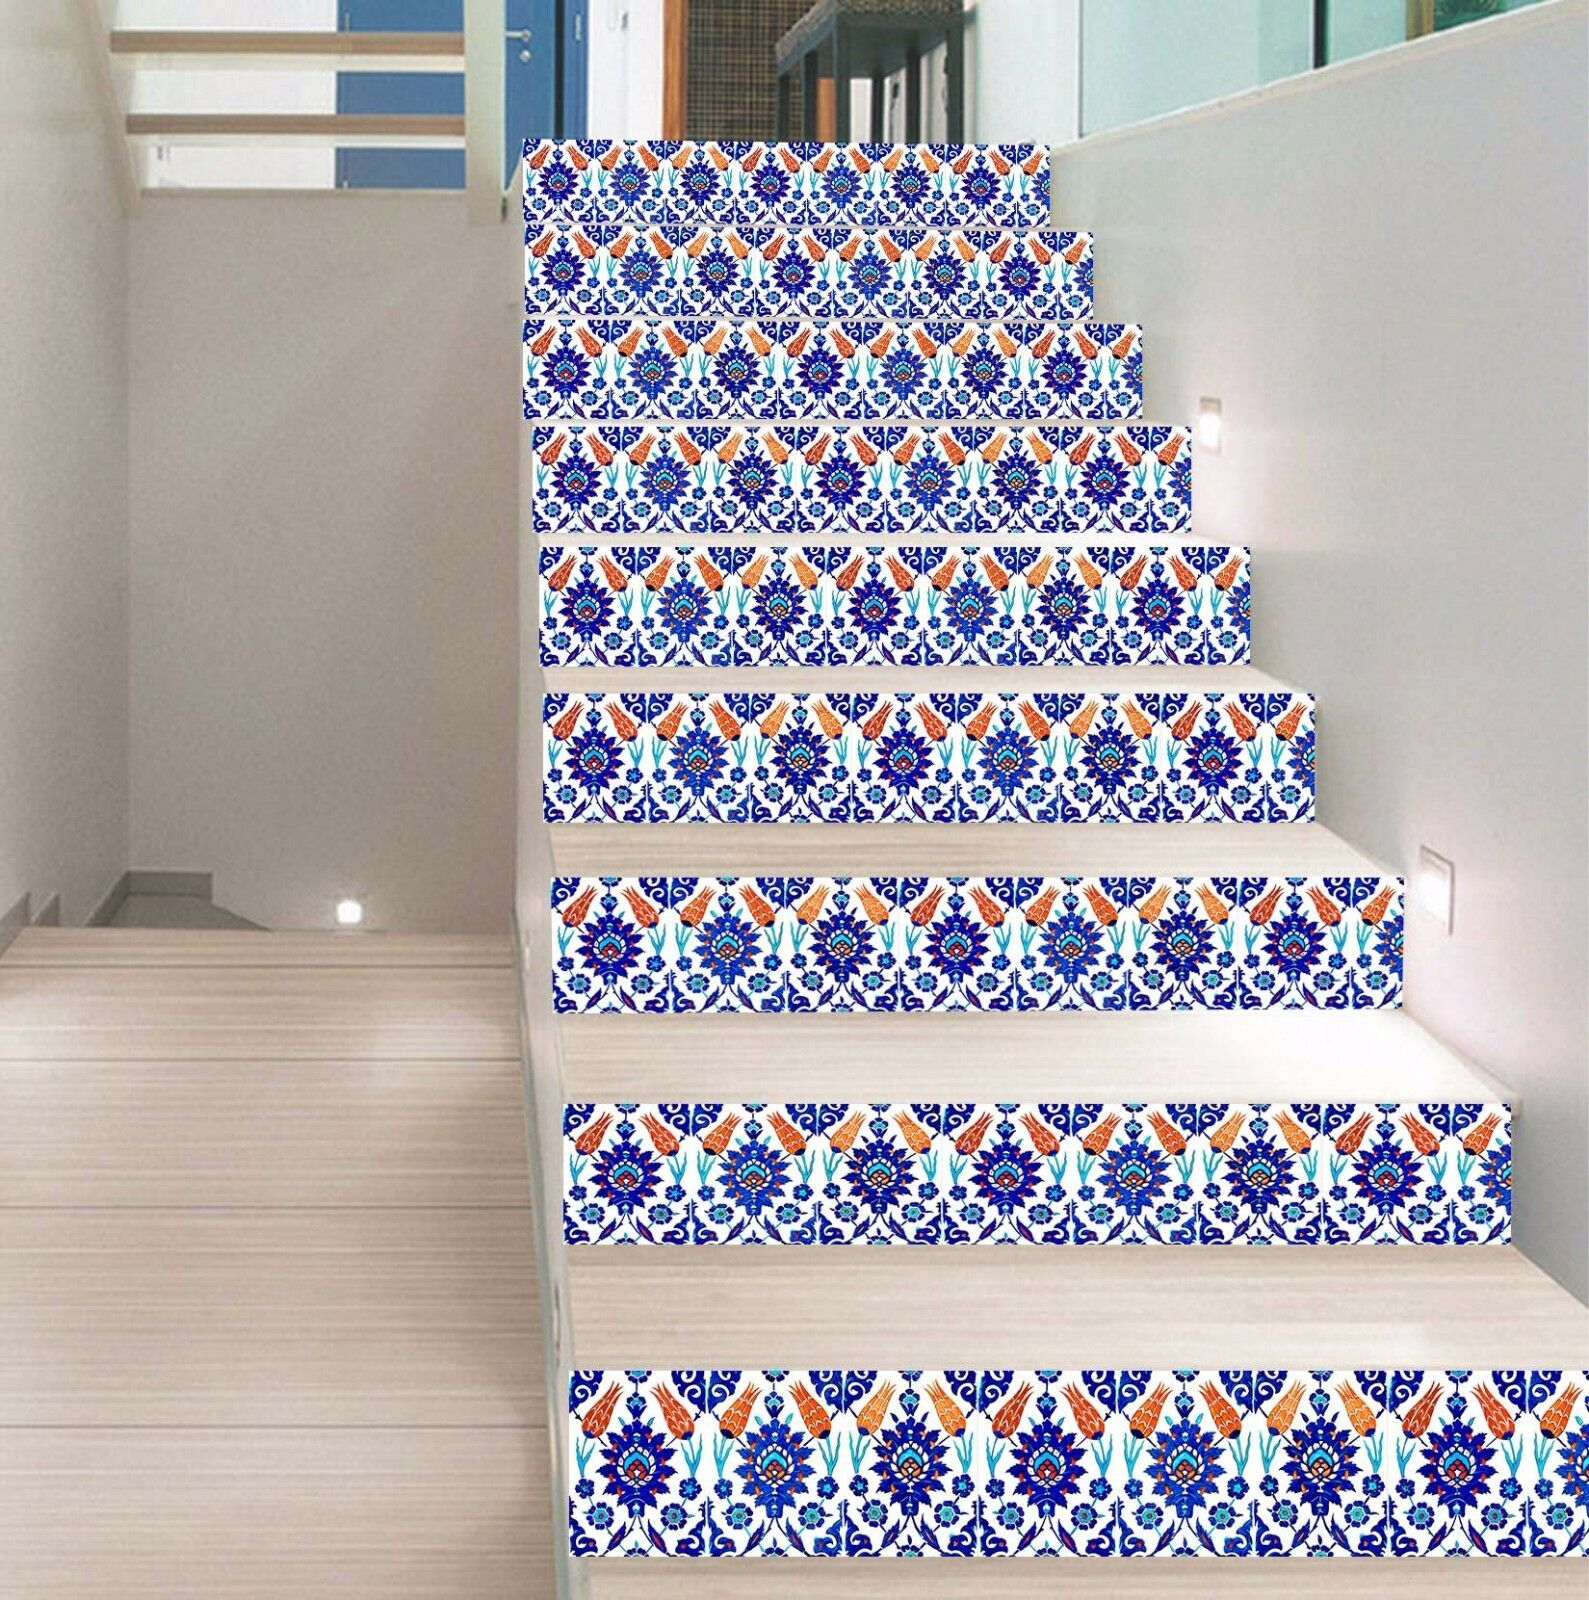 3D Bright Flower 29 Stair Risers Decoration Photo Mural Vinyl Decal Wallpaper AU